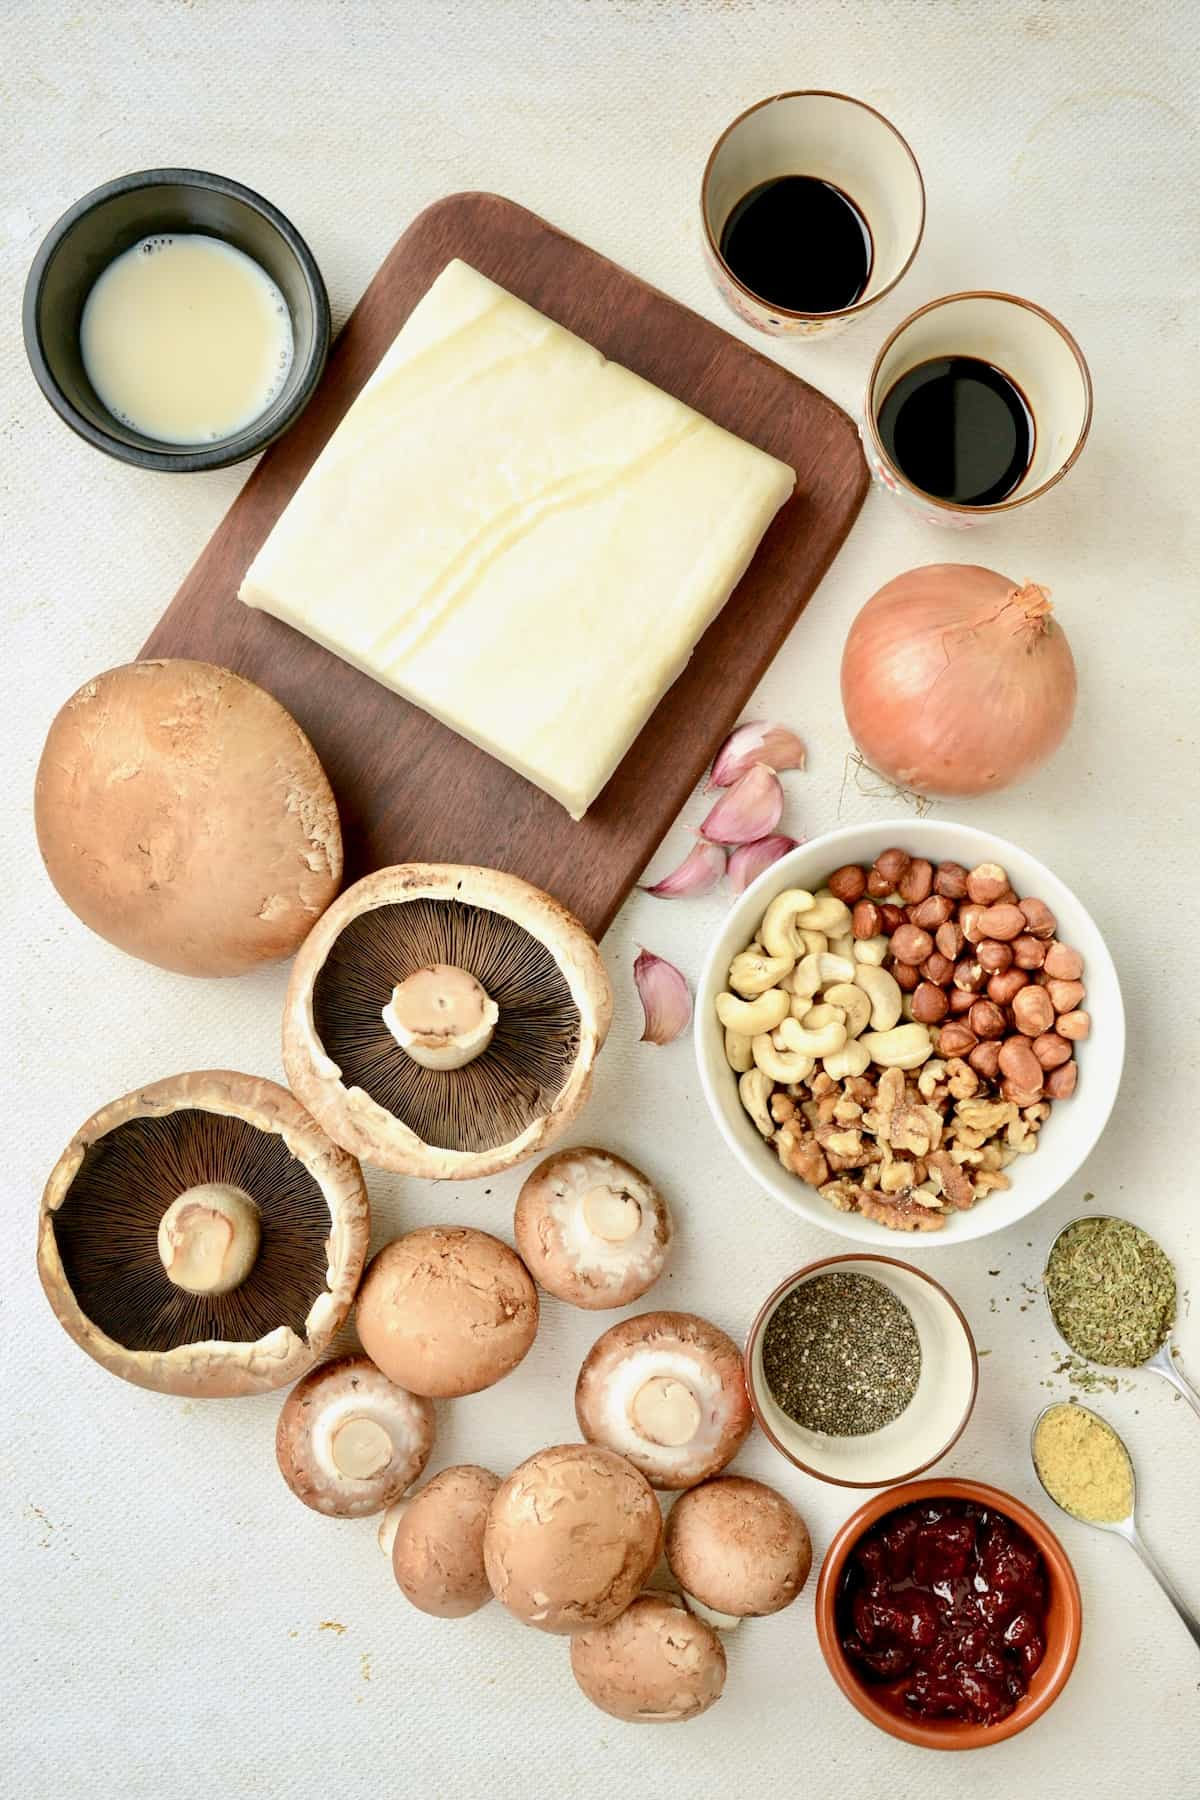 The ingredients for the mushroom wellington all laid out on a white surface.